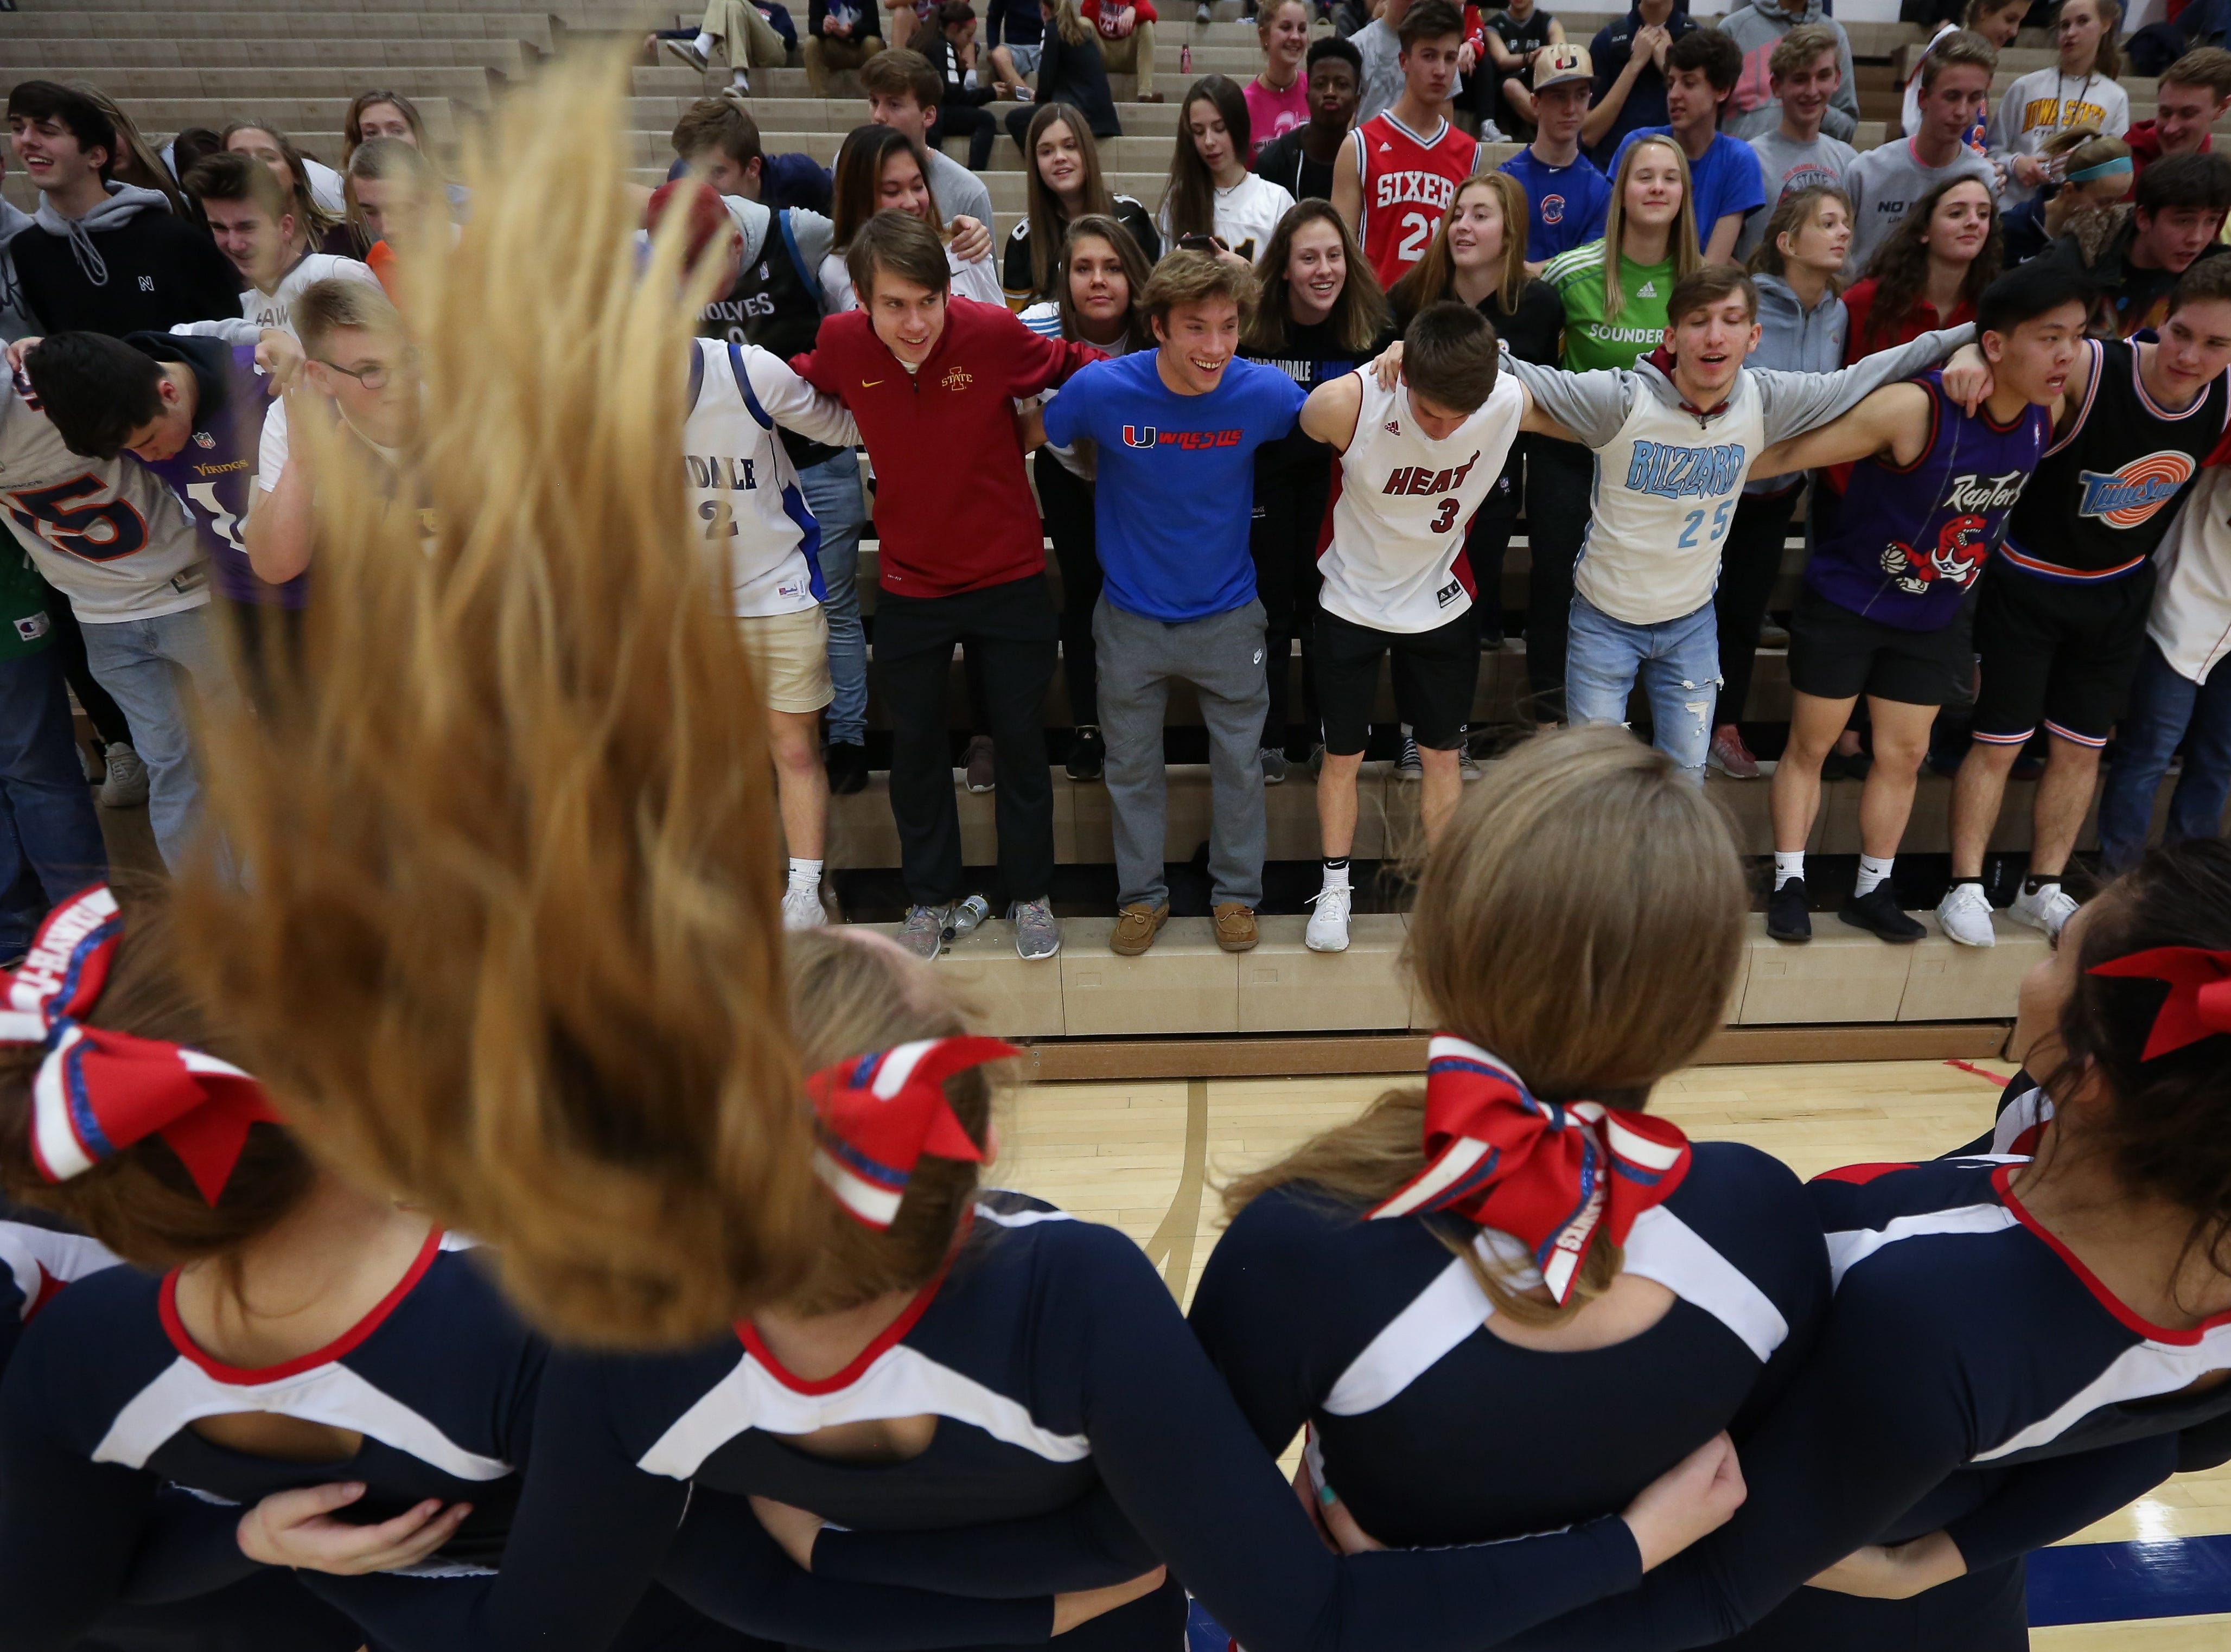 Urbandale cheerleaders lead a chant with student fans during a boys high school basketball game between the Johnston Dragons and the Urbandale J-Hawks at Urbandale High School on Dec. 18, 2018 in Urbandale, Iowa.